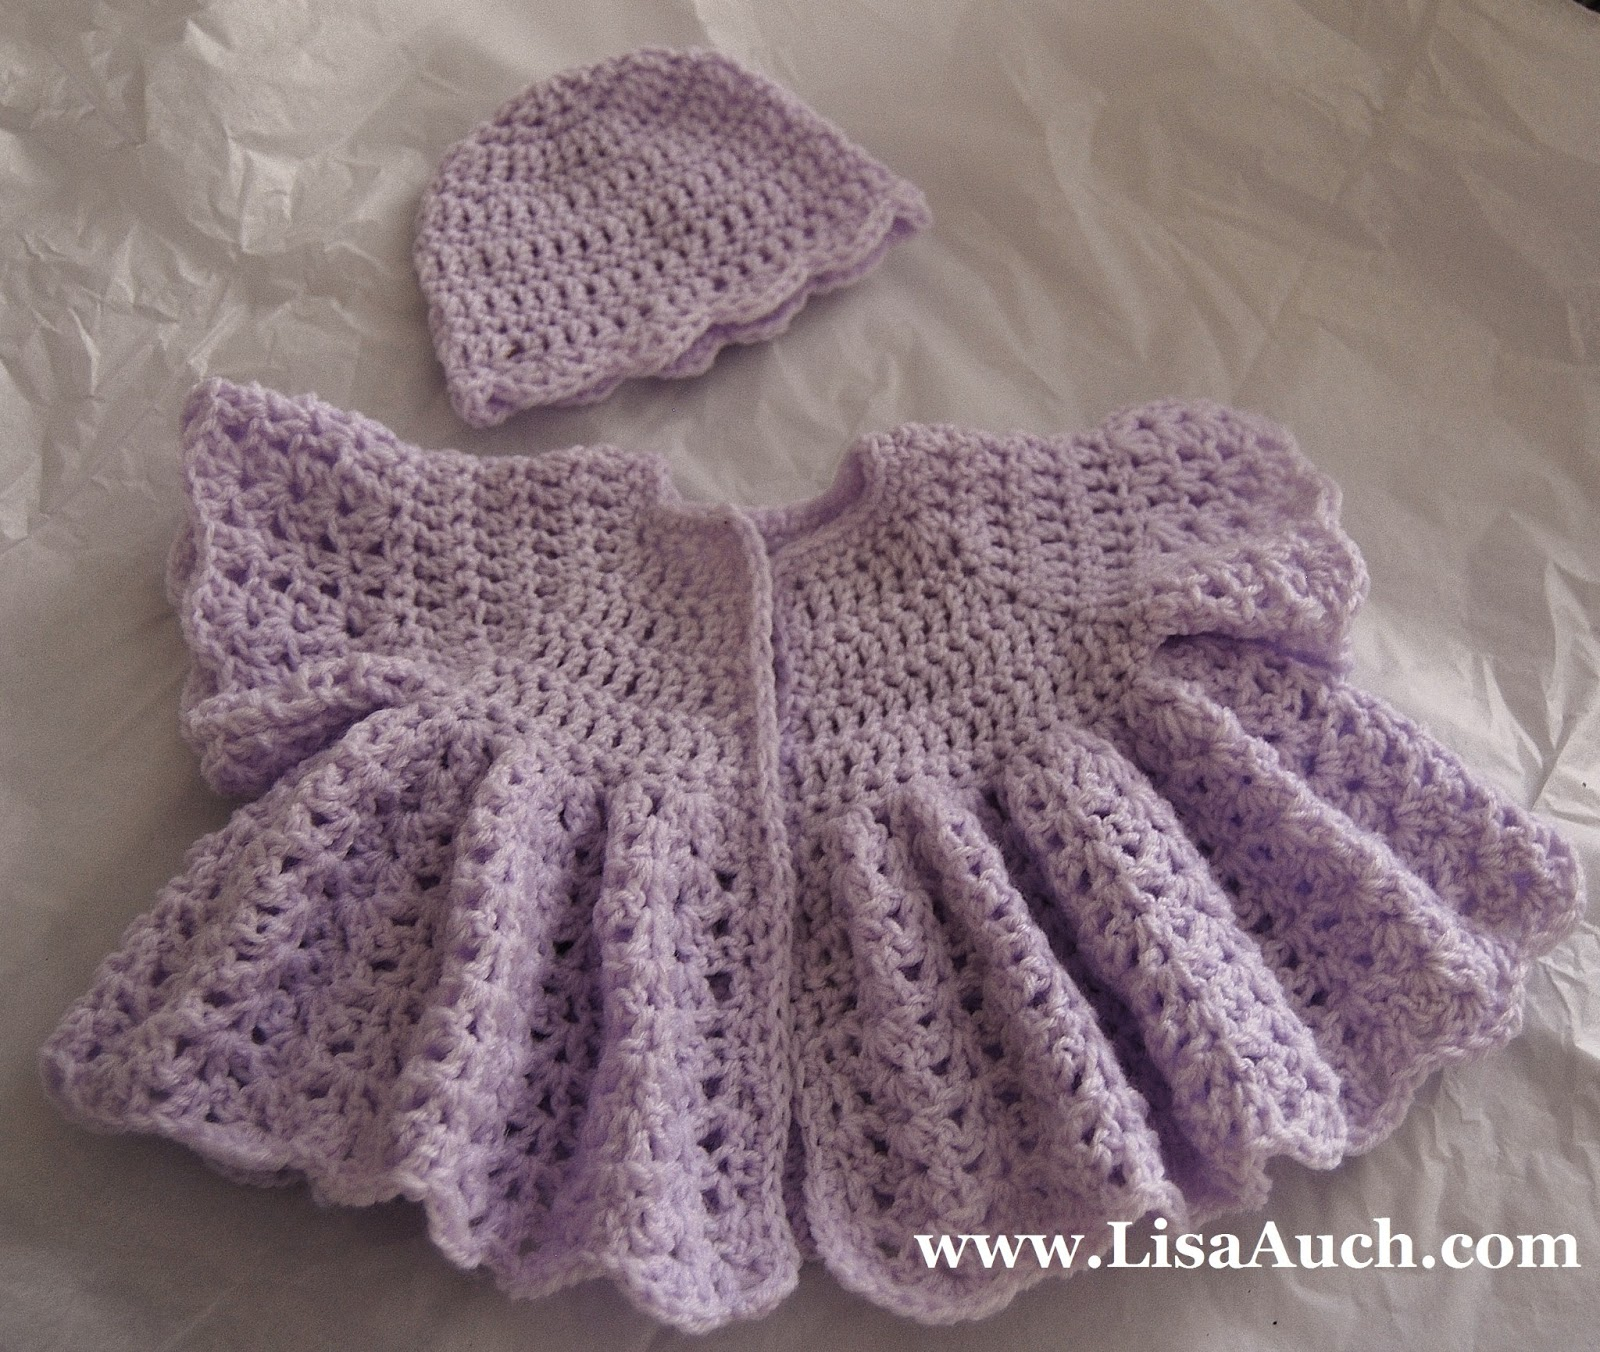 Crochet Baby Sweater : ... free source abuse report free crochet baby sweater source abuse report